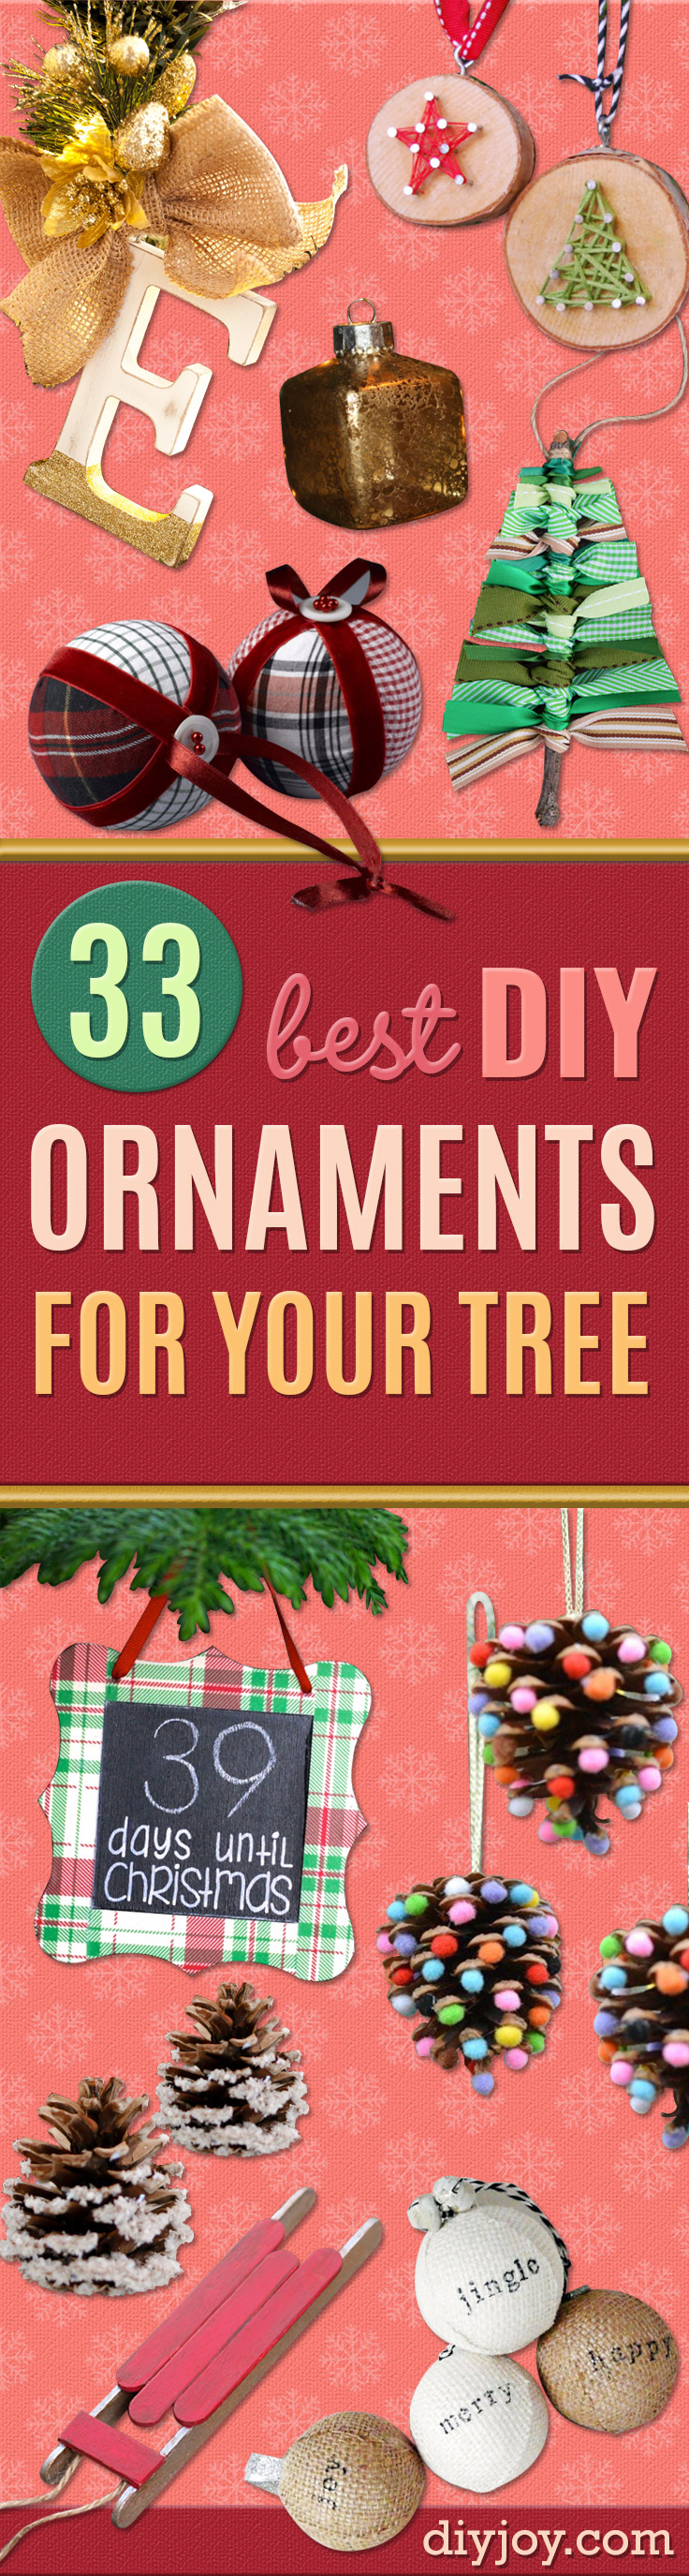 diy christmas ornaments to make for the tree- homemade christmas ornament idea - Best DIY Ornament Ideas for Your Christmas Tree - Cool Handmade Ornaments, DIY Decorating Ideas and Ornament Tutorials - Creative Ways To Decorate Trees on A Budget - Cheap Rustic Decor, Easy Step by Step Tutorials